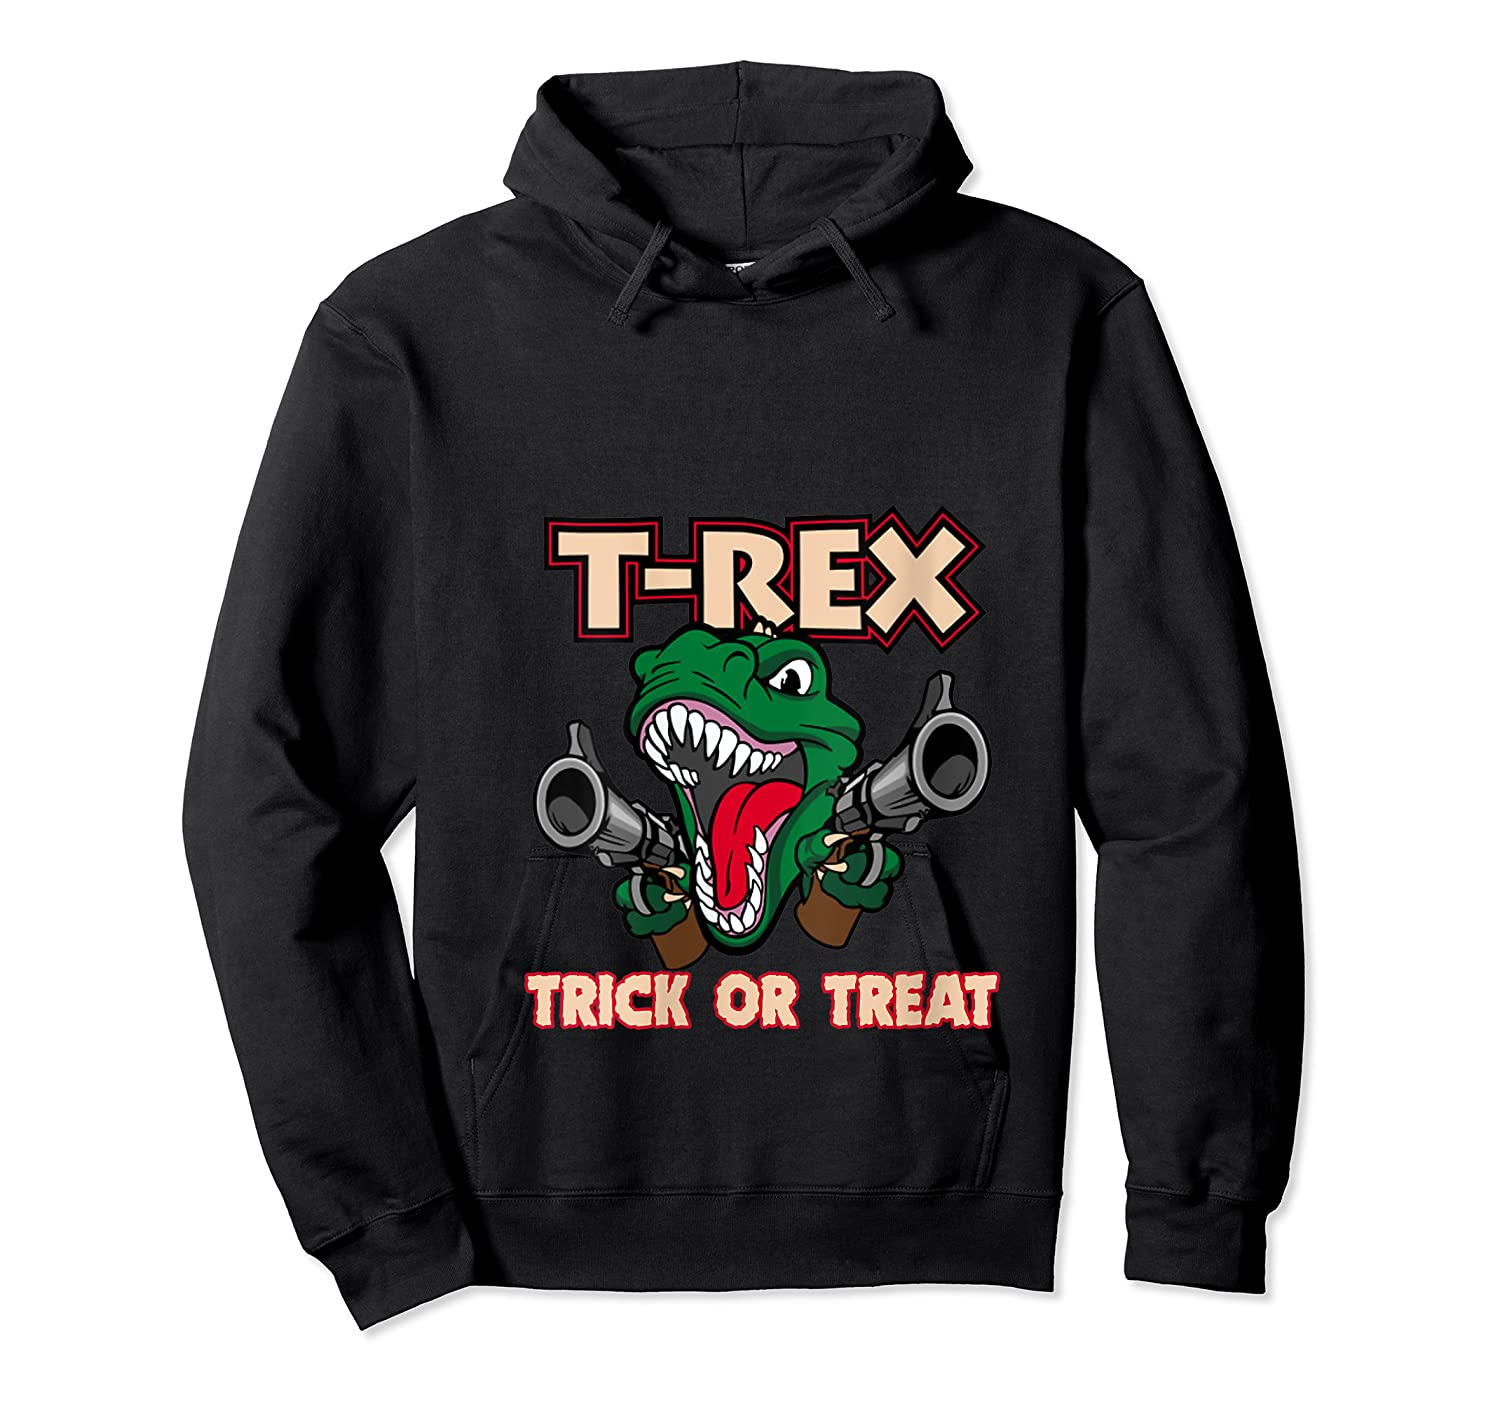 T Rex Arms Trick Or Treat Halloween Shirts Unisex Pullover Hoodie